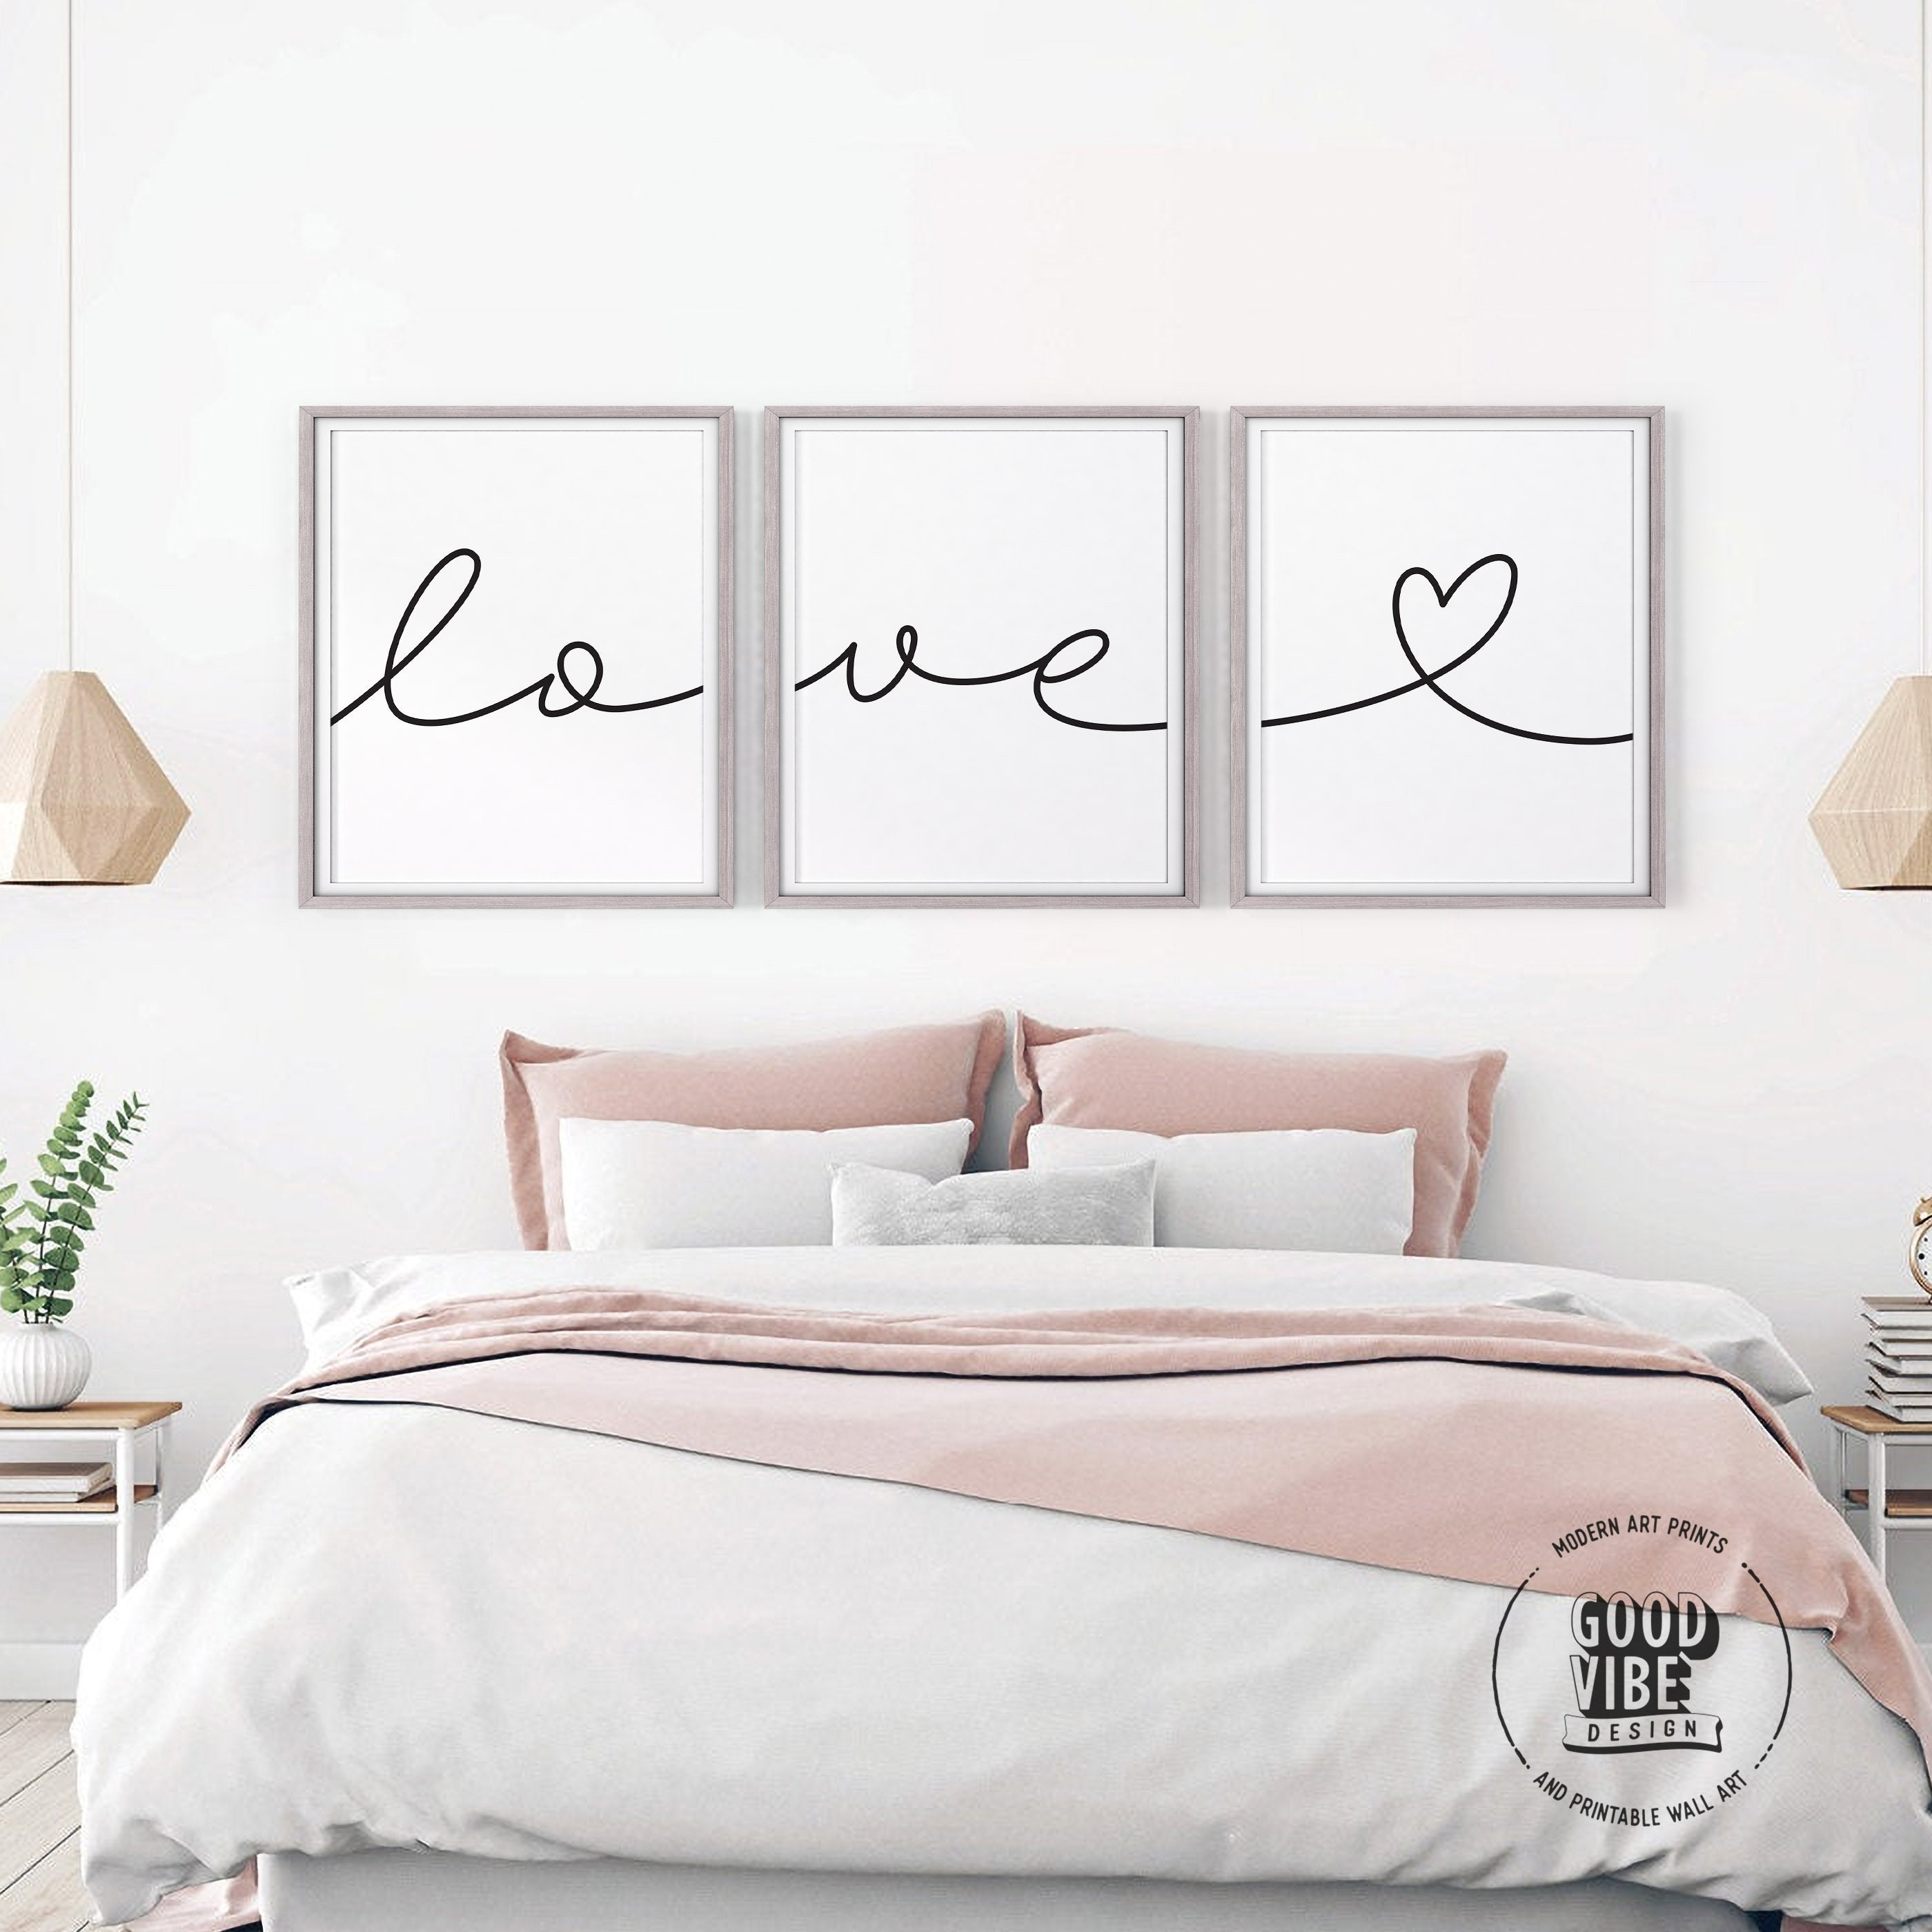 Above Bed Quote Couples Wall Prints Love You More Sign Bedroom Wall Decor Couple Quote Set of 3 Prints Bedroom Art Bedroom Prints Set